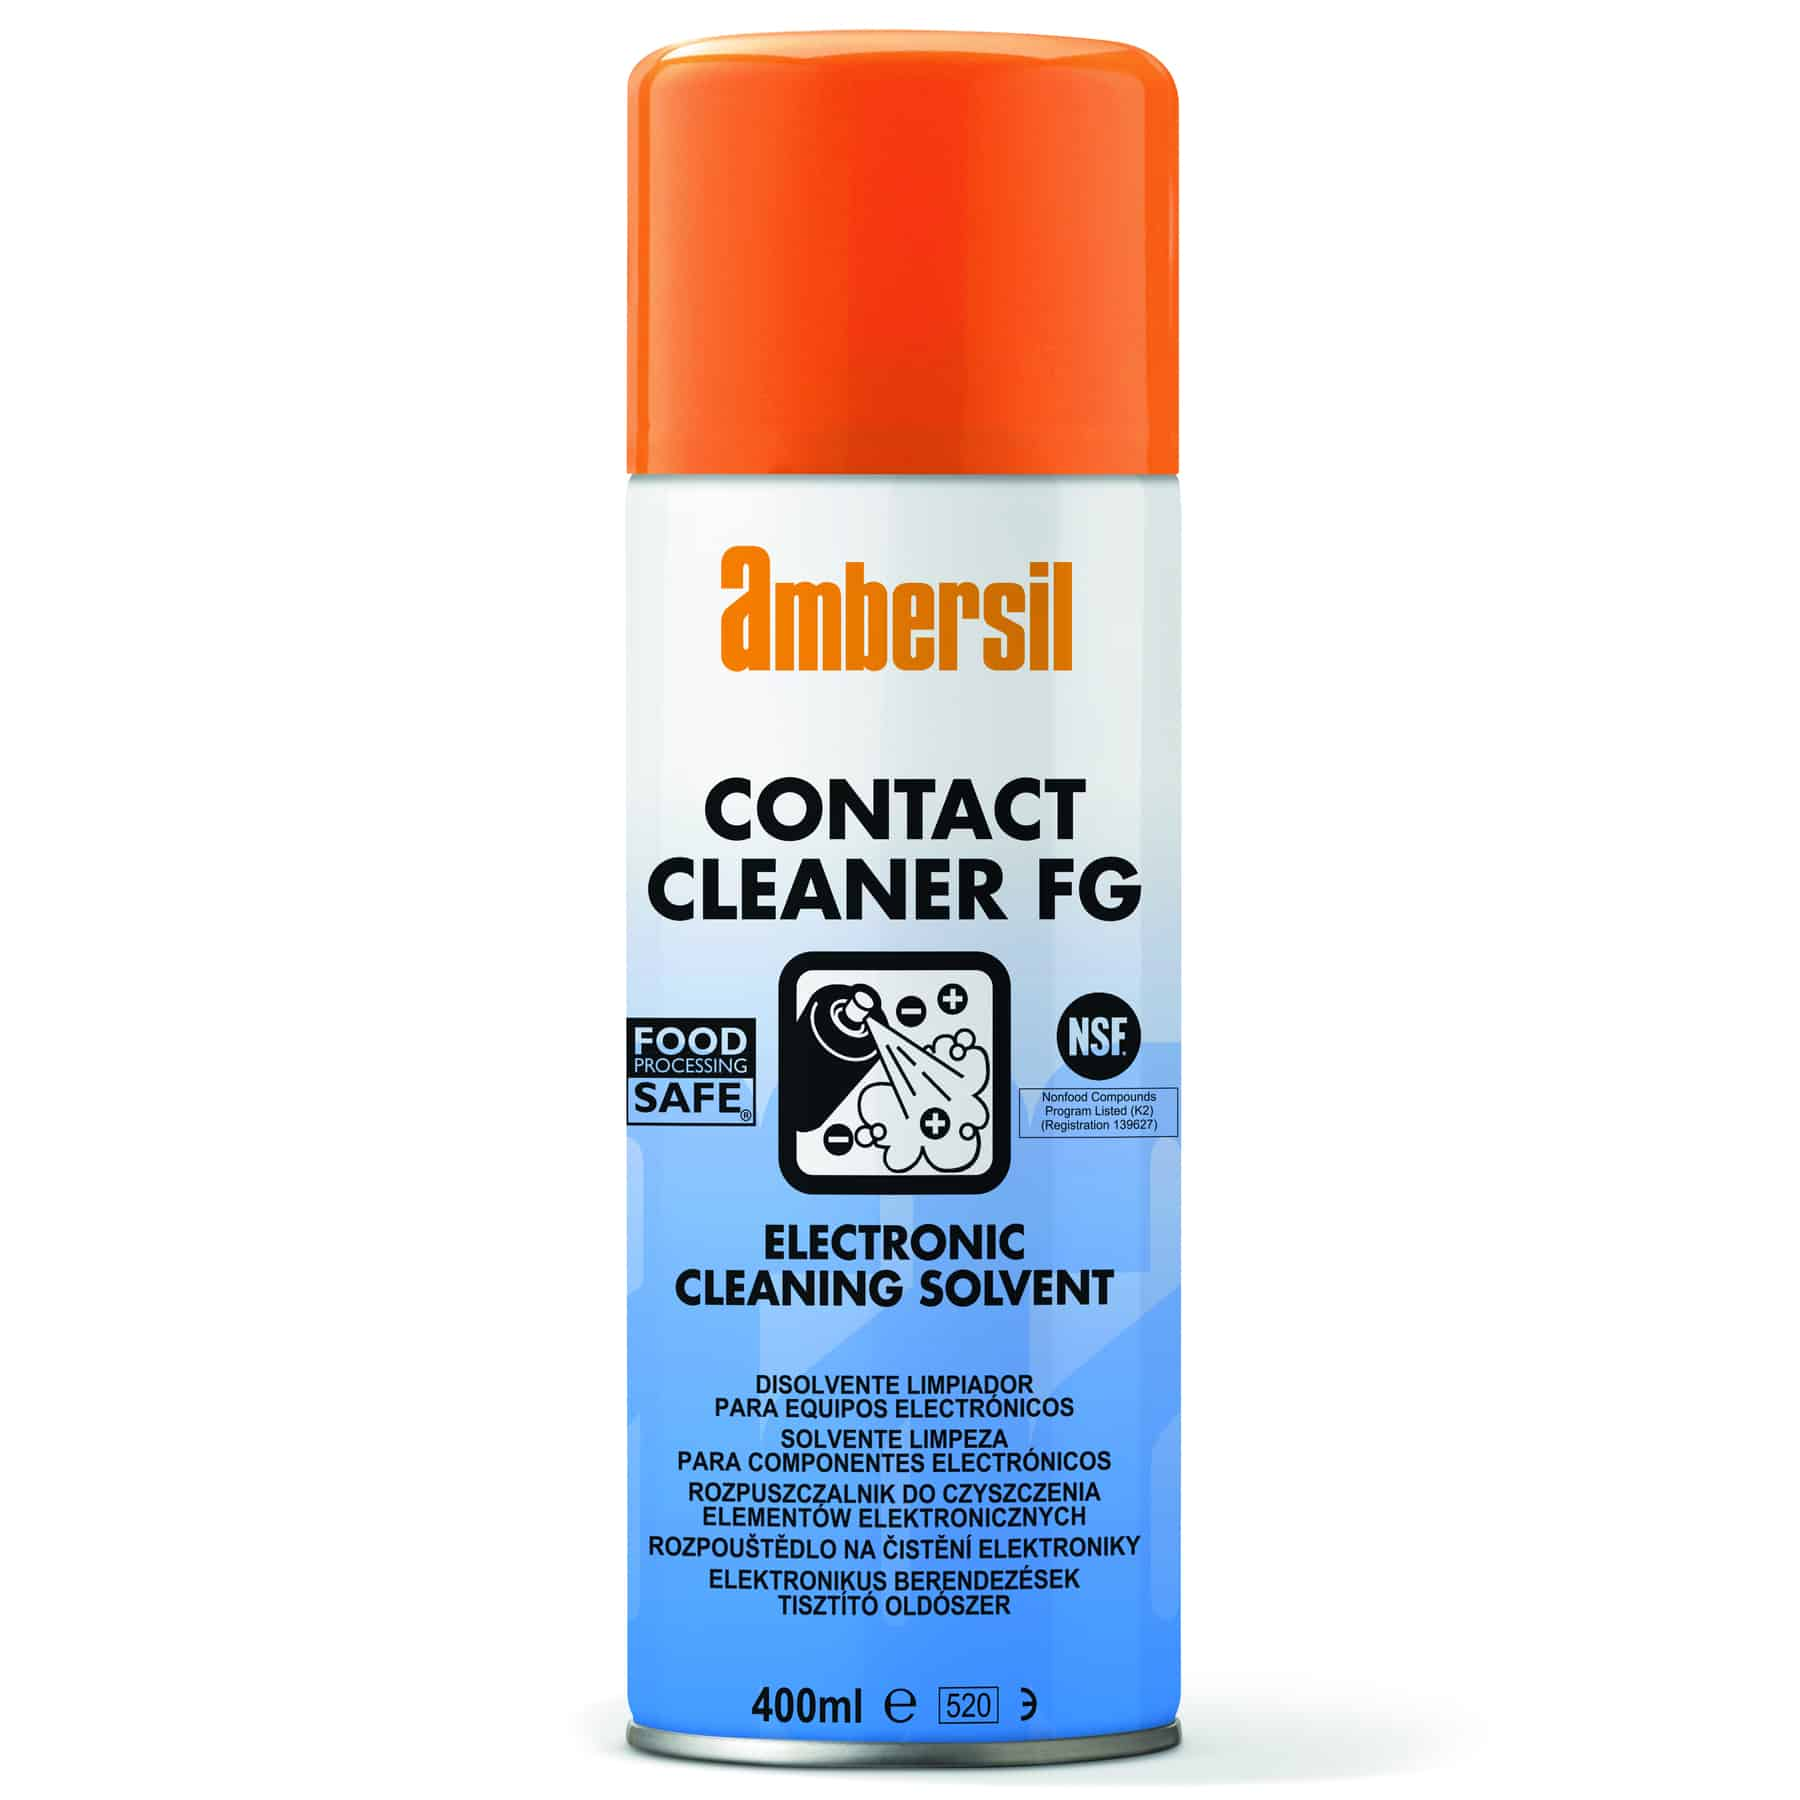 Ambersil - Contact Cleaner FG 400ml